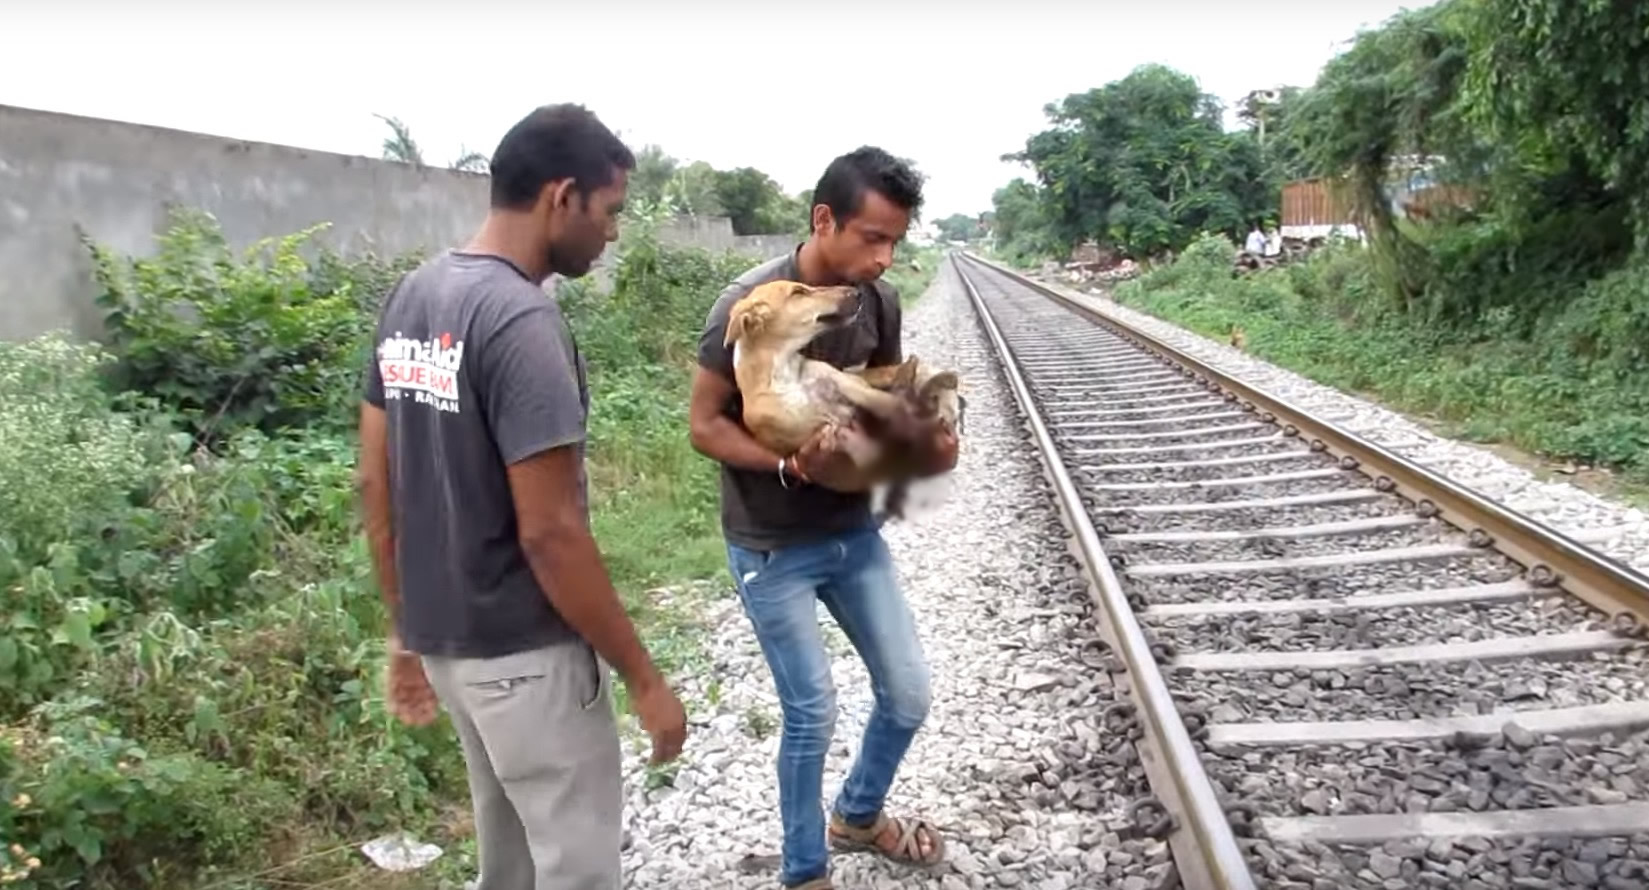 animal-aid-chien-train-blessures-3